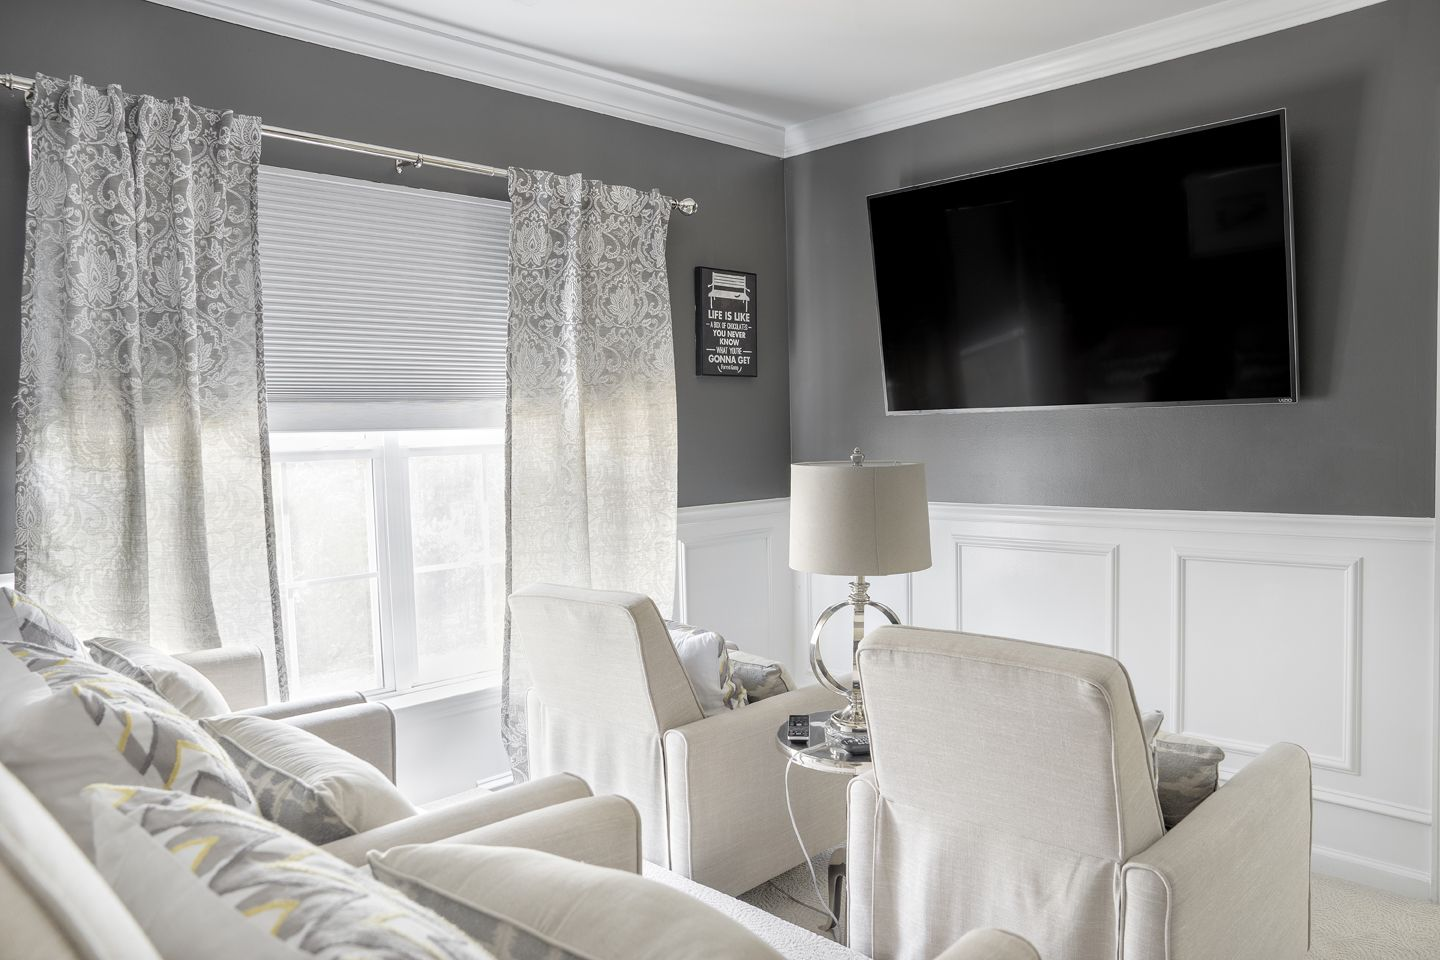 At Home With Nikki | DIY Media Room | Ideas | Pinterest | Room ...